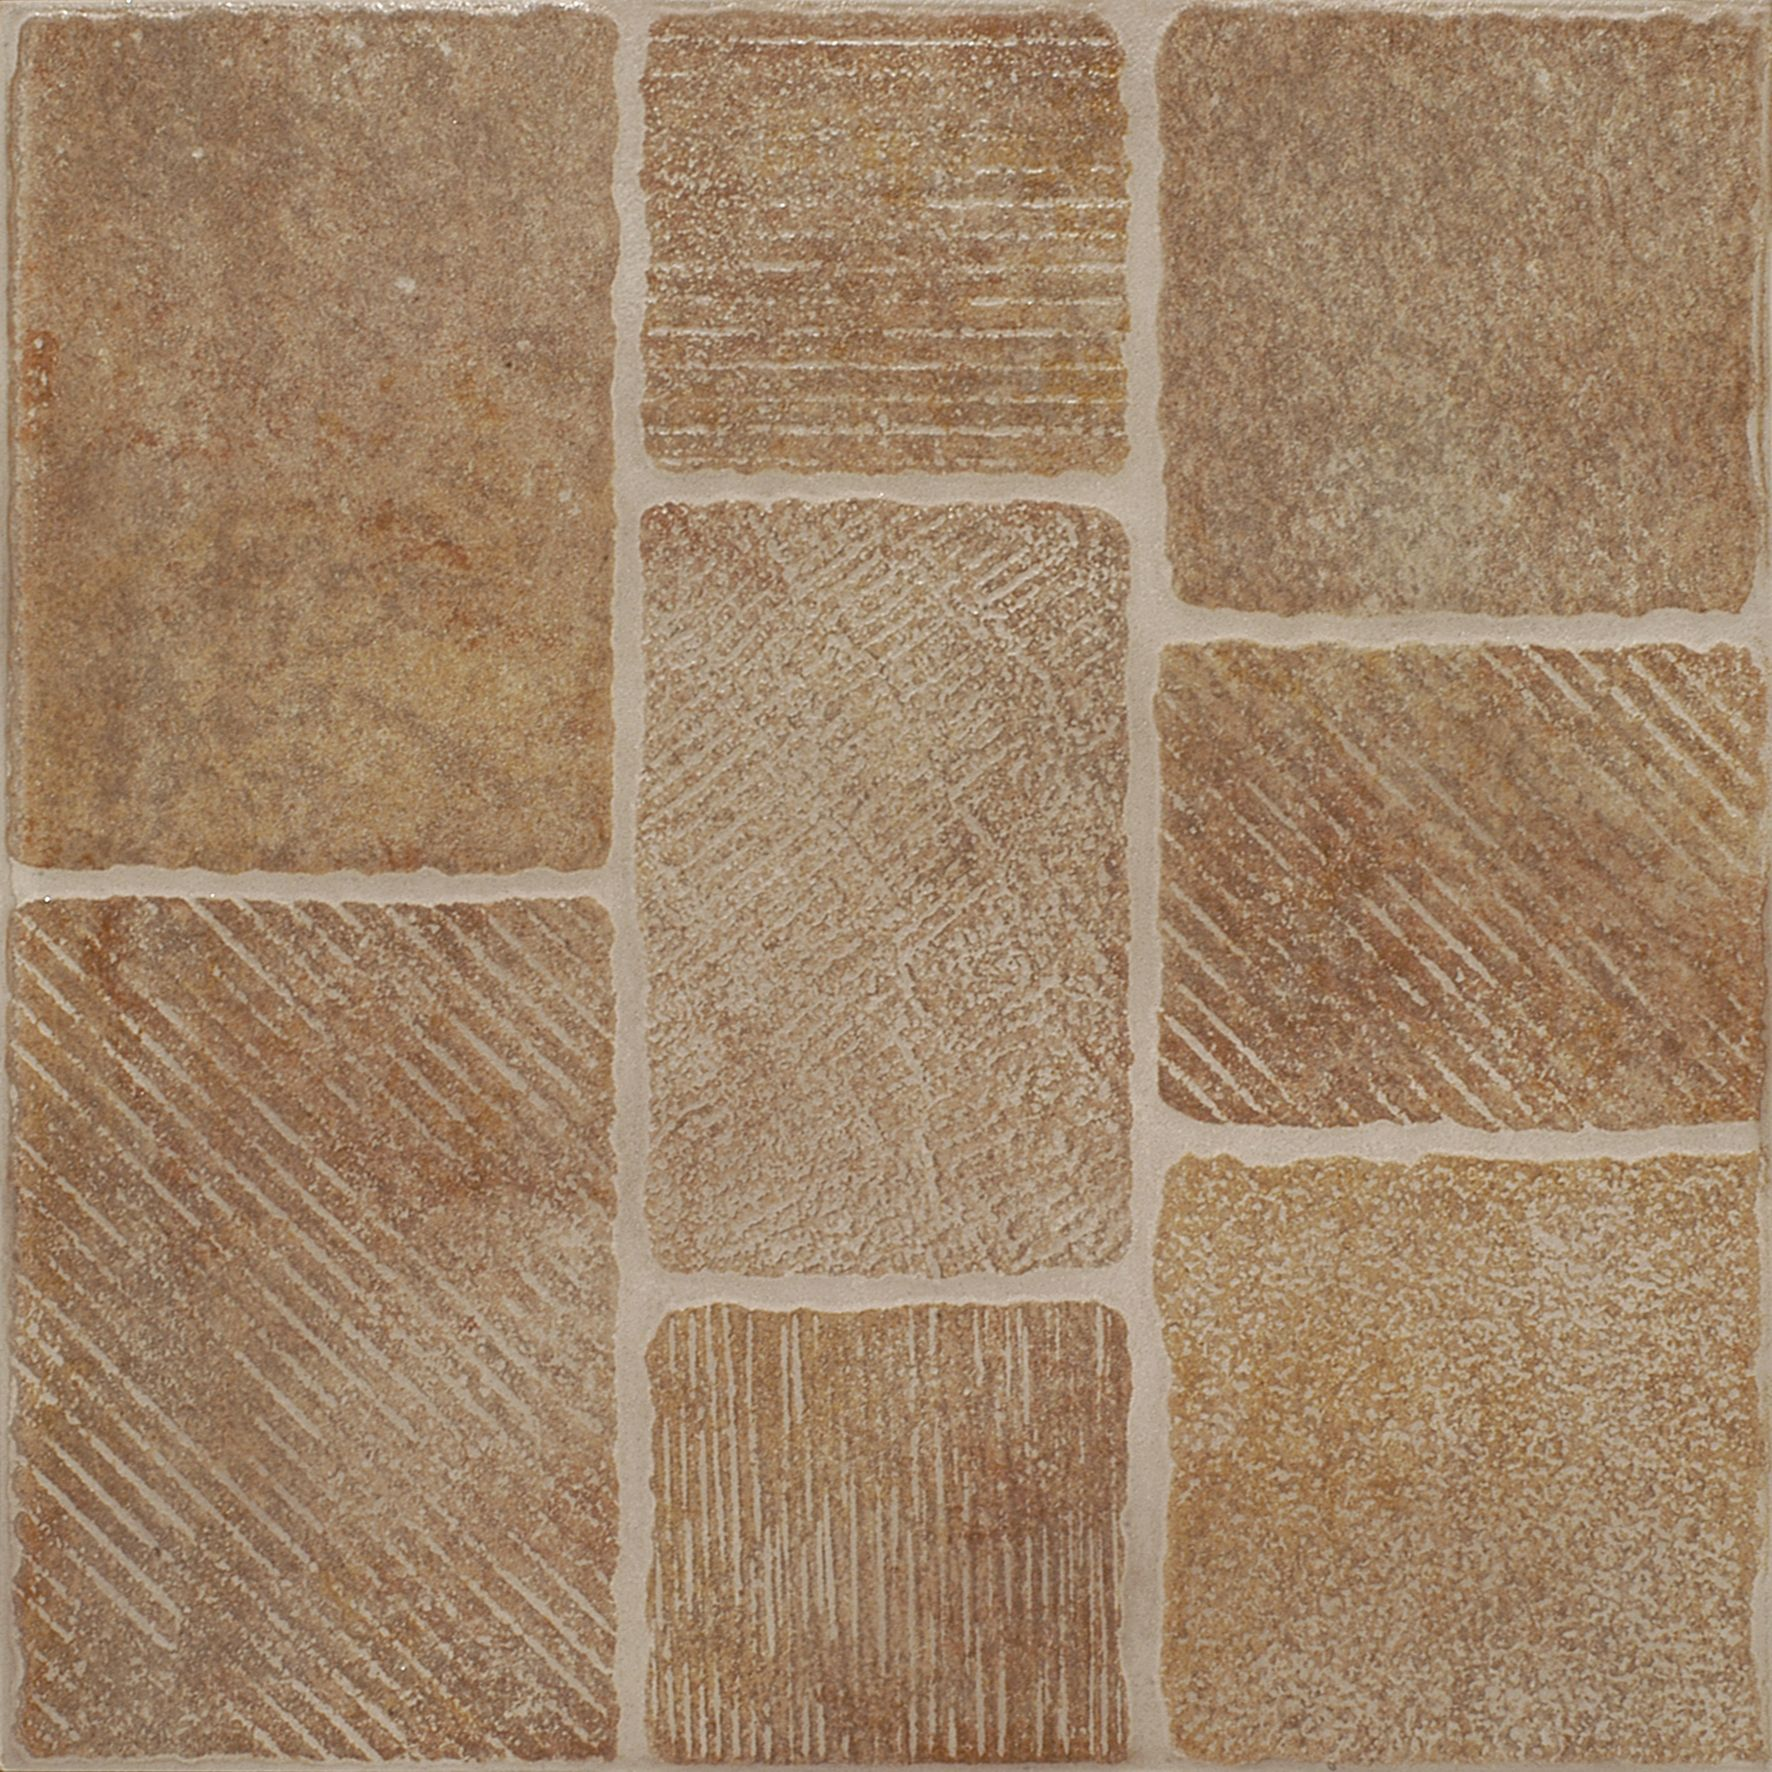 Piso rucamalen rosso 453x453 material texture pinterest piso rucamalen rosso 453x453 dailygadgetfo Choice Image